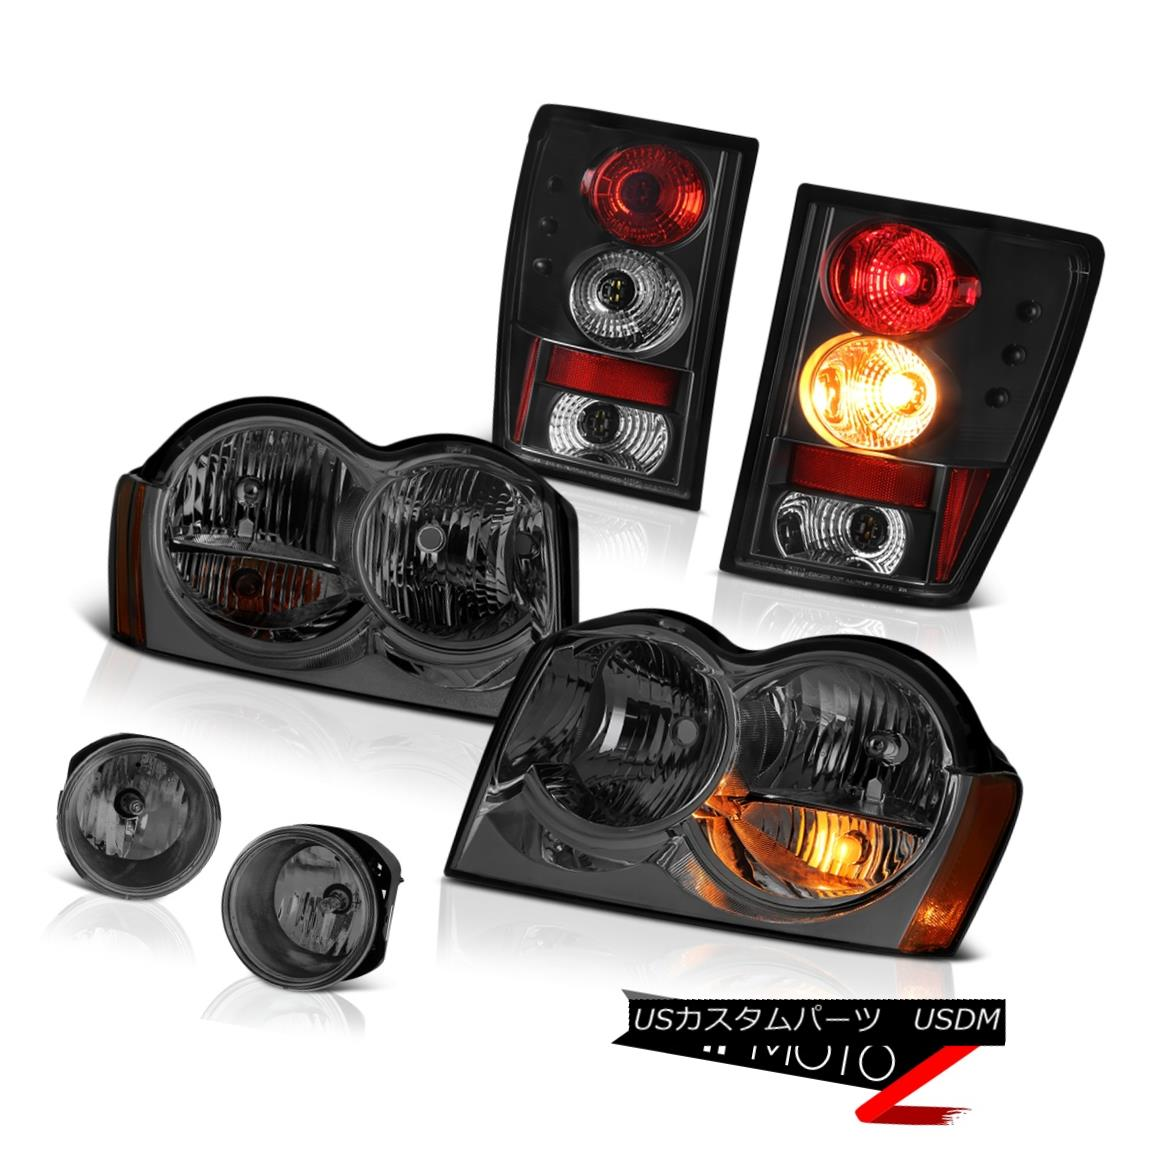 ヘッドライト 2005-2006 Jeep Grand Cherokee Limited Headlights Foglights Raven Black Taillamps 2005-2006 Jeep Grand Cherokee LimitedヘッドライトFoglights Raven Black Taillamps